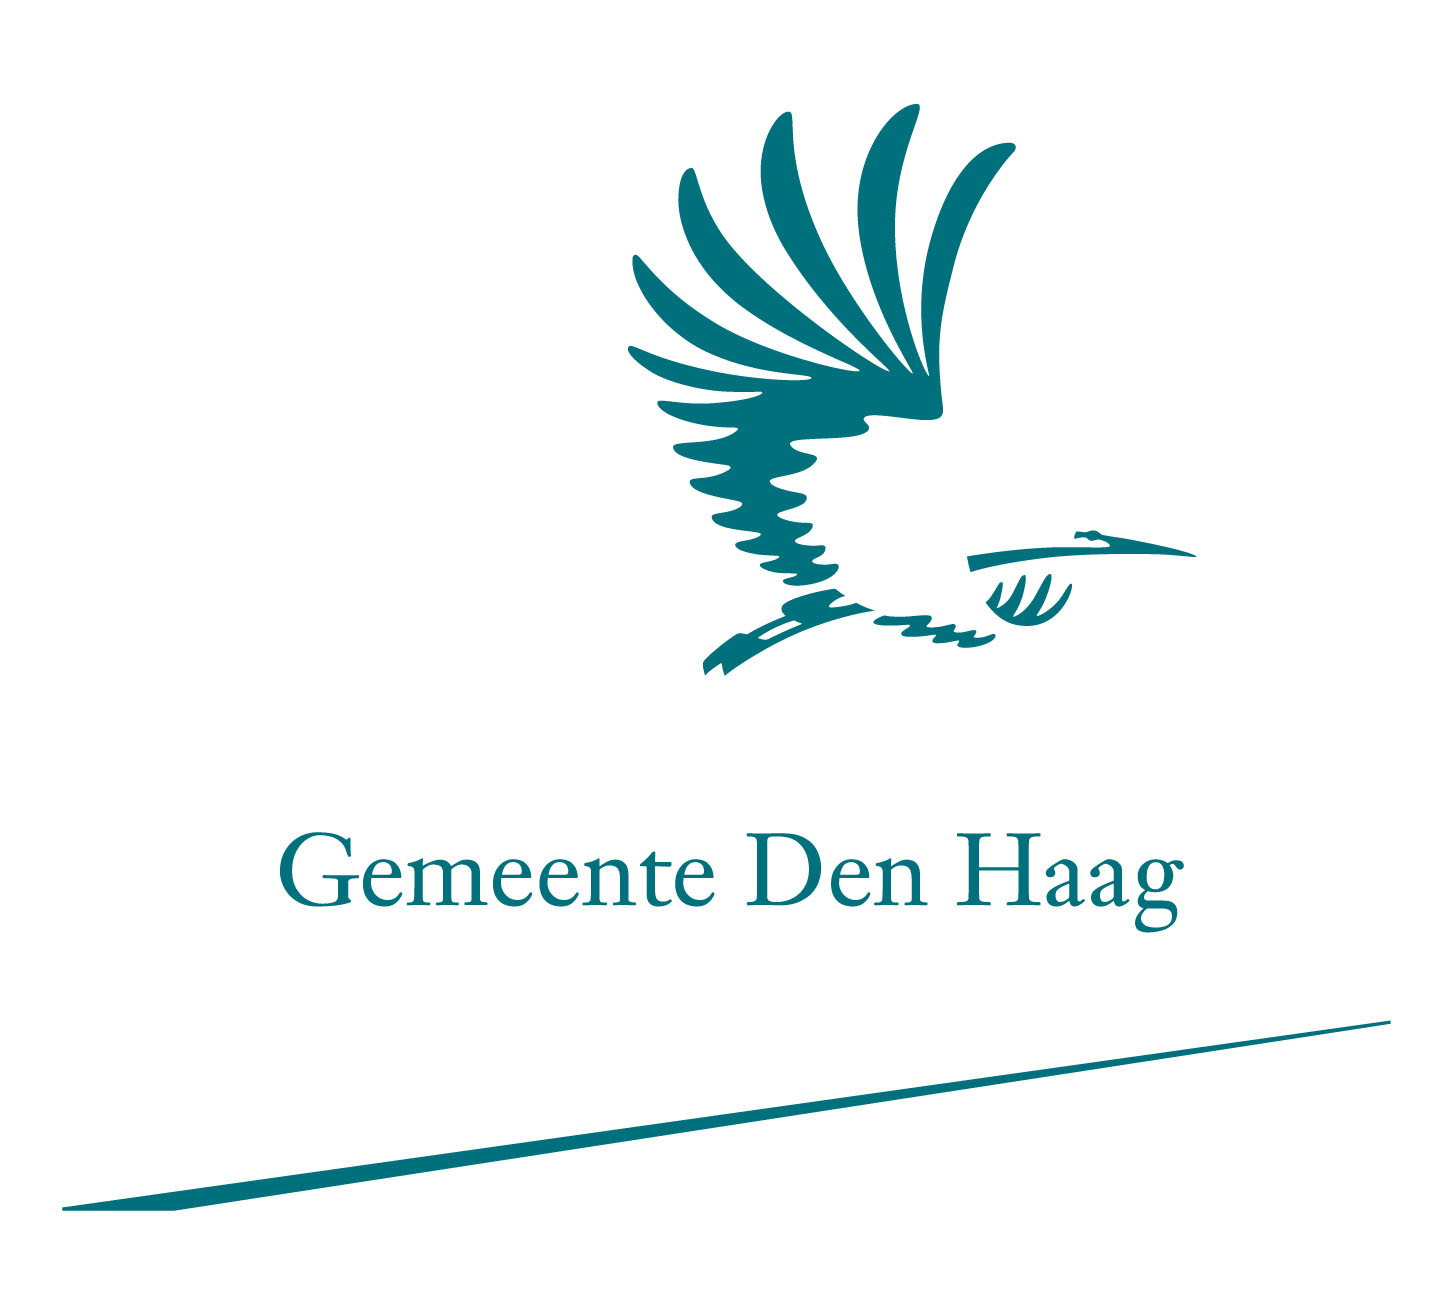 J. van Onselen - Gemeente Den Haag